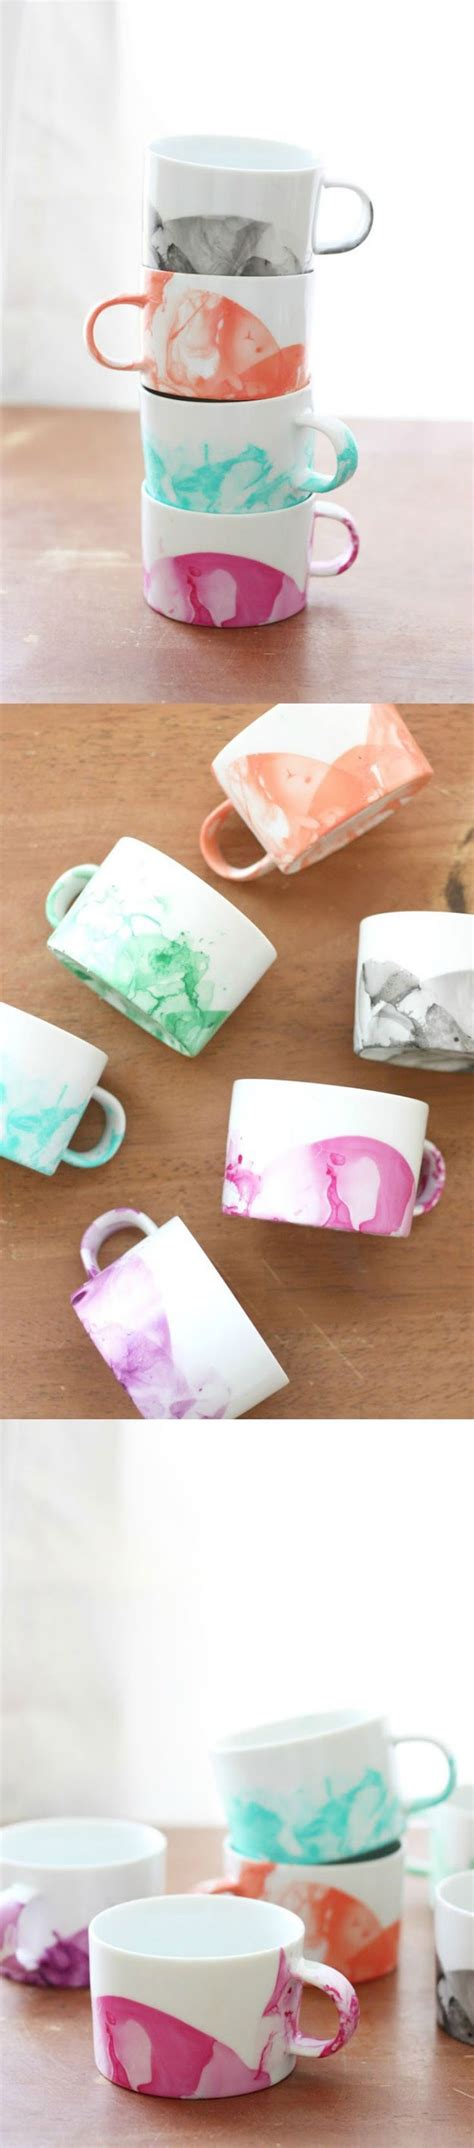 47 Fun Pinterest Crafts That Aren't Impossible  Diy. Baby Shower Ideas With Owls. Zucchini Food Ideas. Display Ideas For Goldilocks And The Three Bears. Bathroom Curtain Ideas Diy. Galley Kitchen Remodel Ideas Pictures. Bathroom Ideas Replace Tub With Shower. Breakfast Ideas Grain Free. Creative Ideas Icon